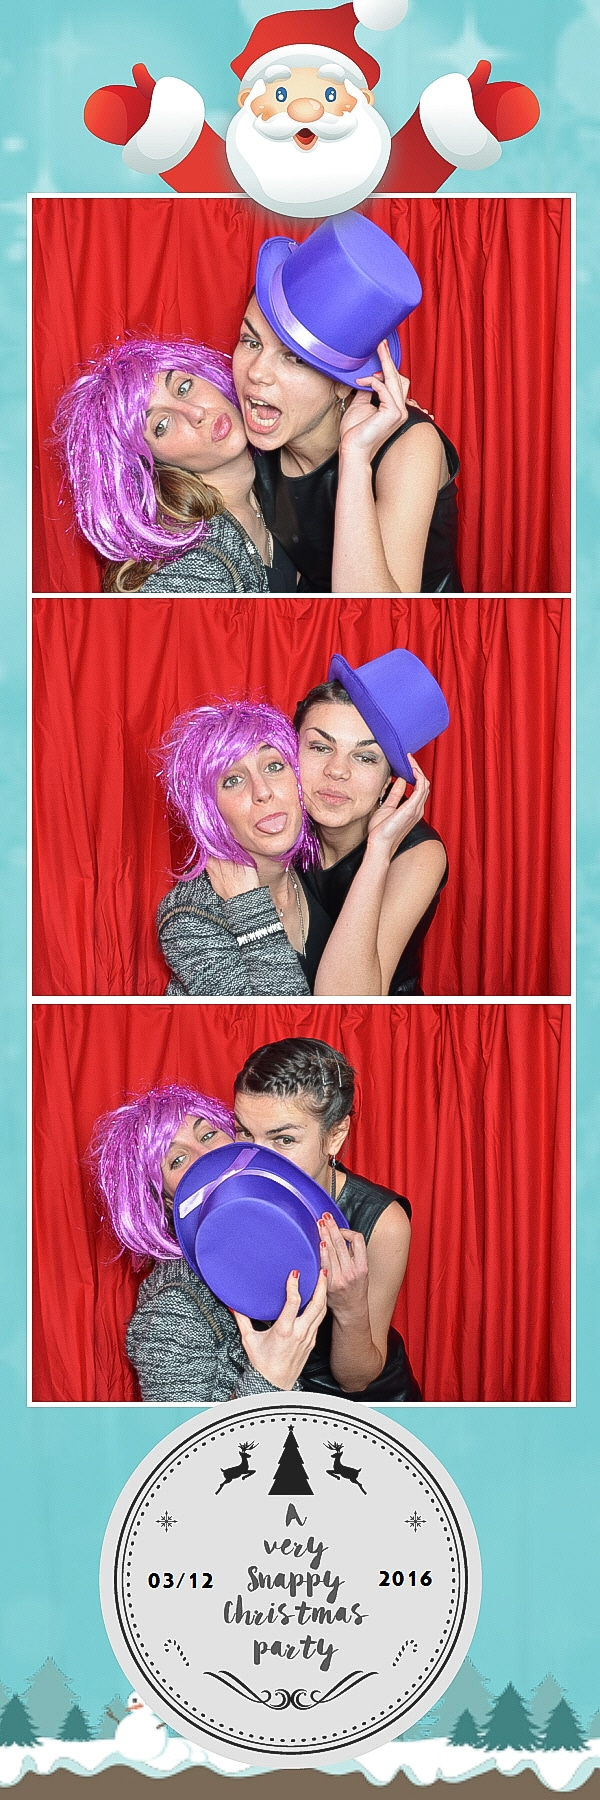 two girls in photo booth wearing pink wigs